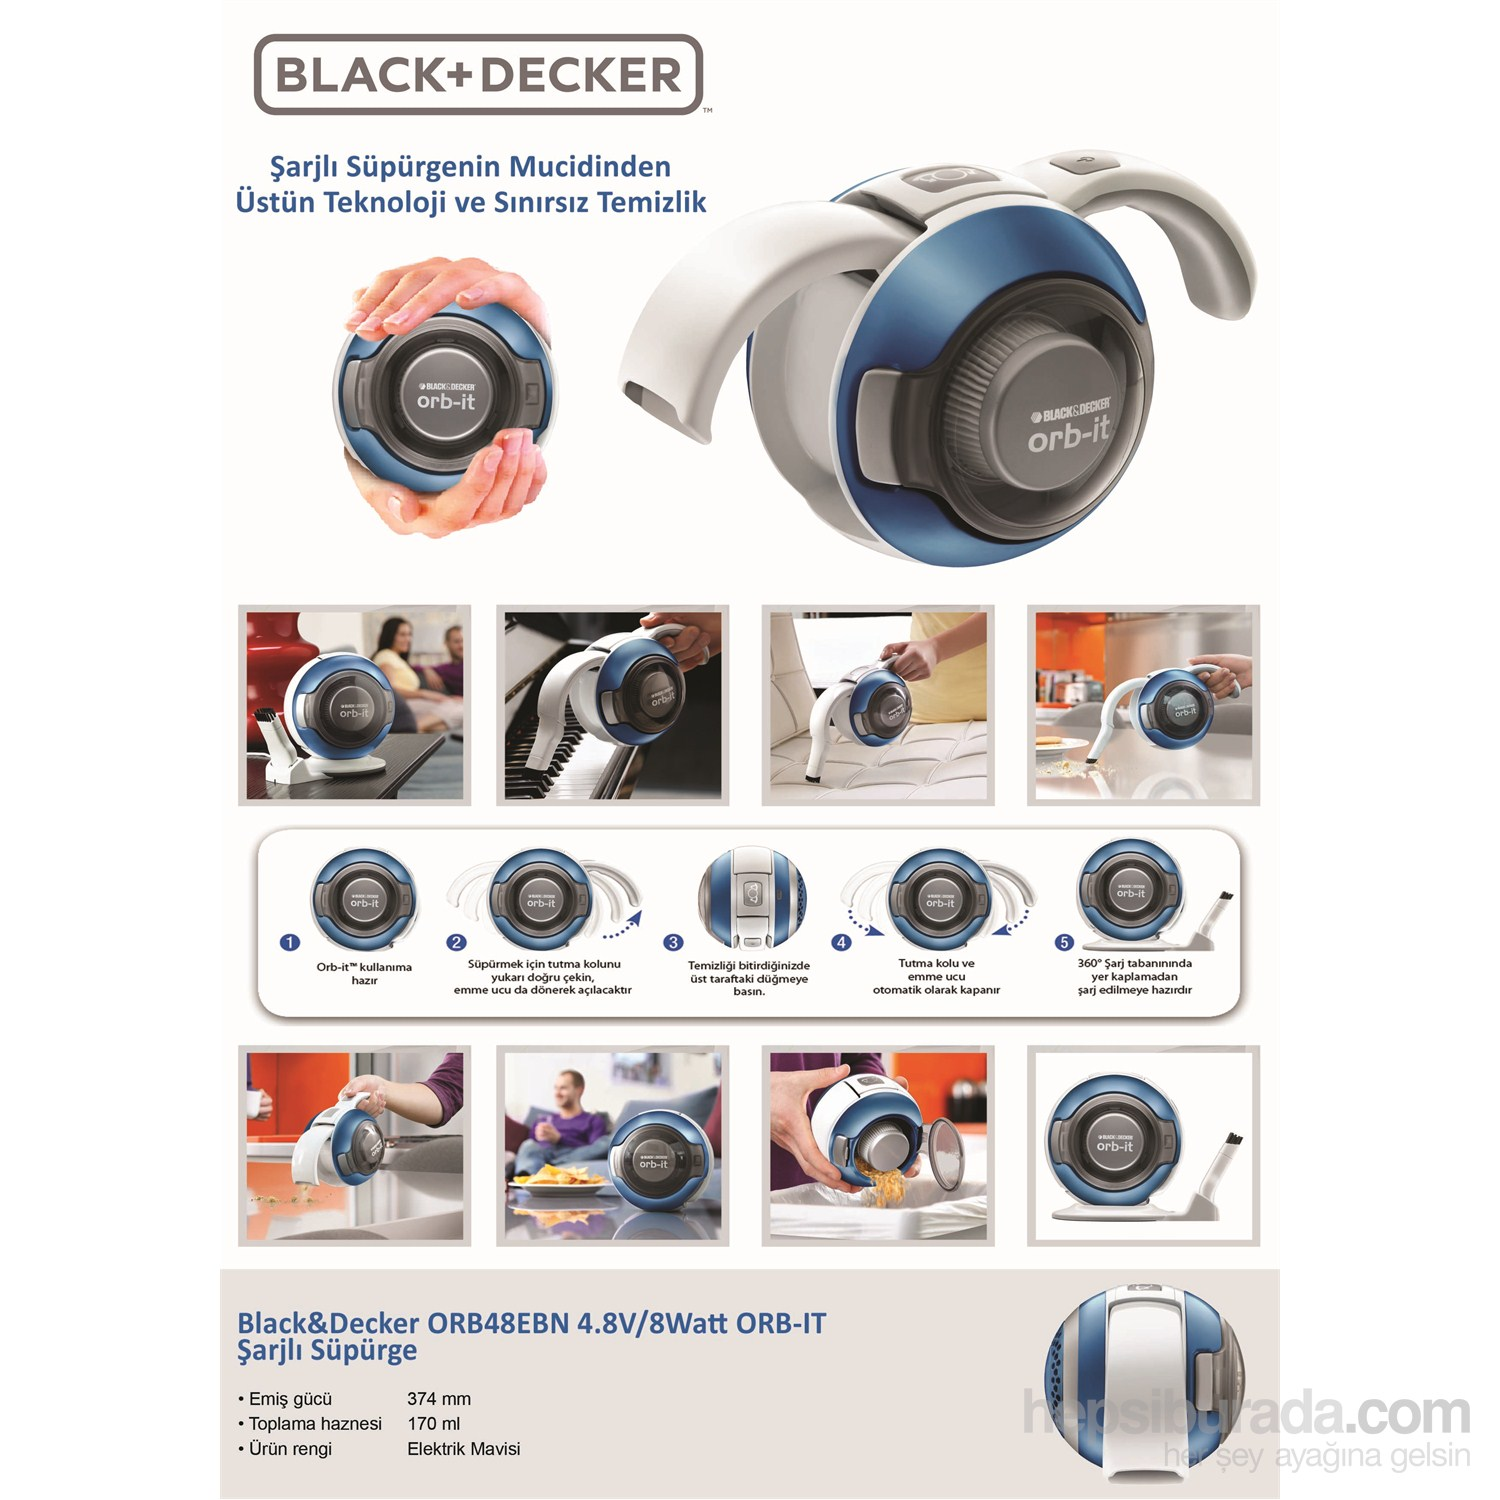 black decker orb48ebn 4 8v 8watt orb it arjl s p rge fiyat. Black Bedroom Furniture Sets. Home Design Ideas